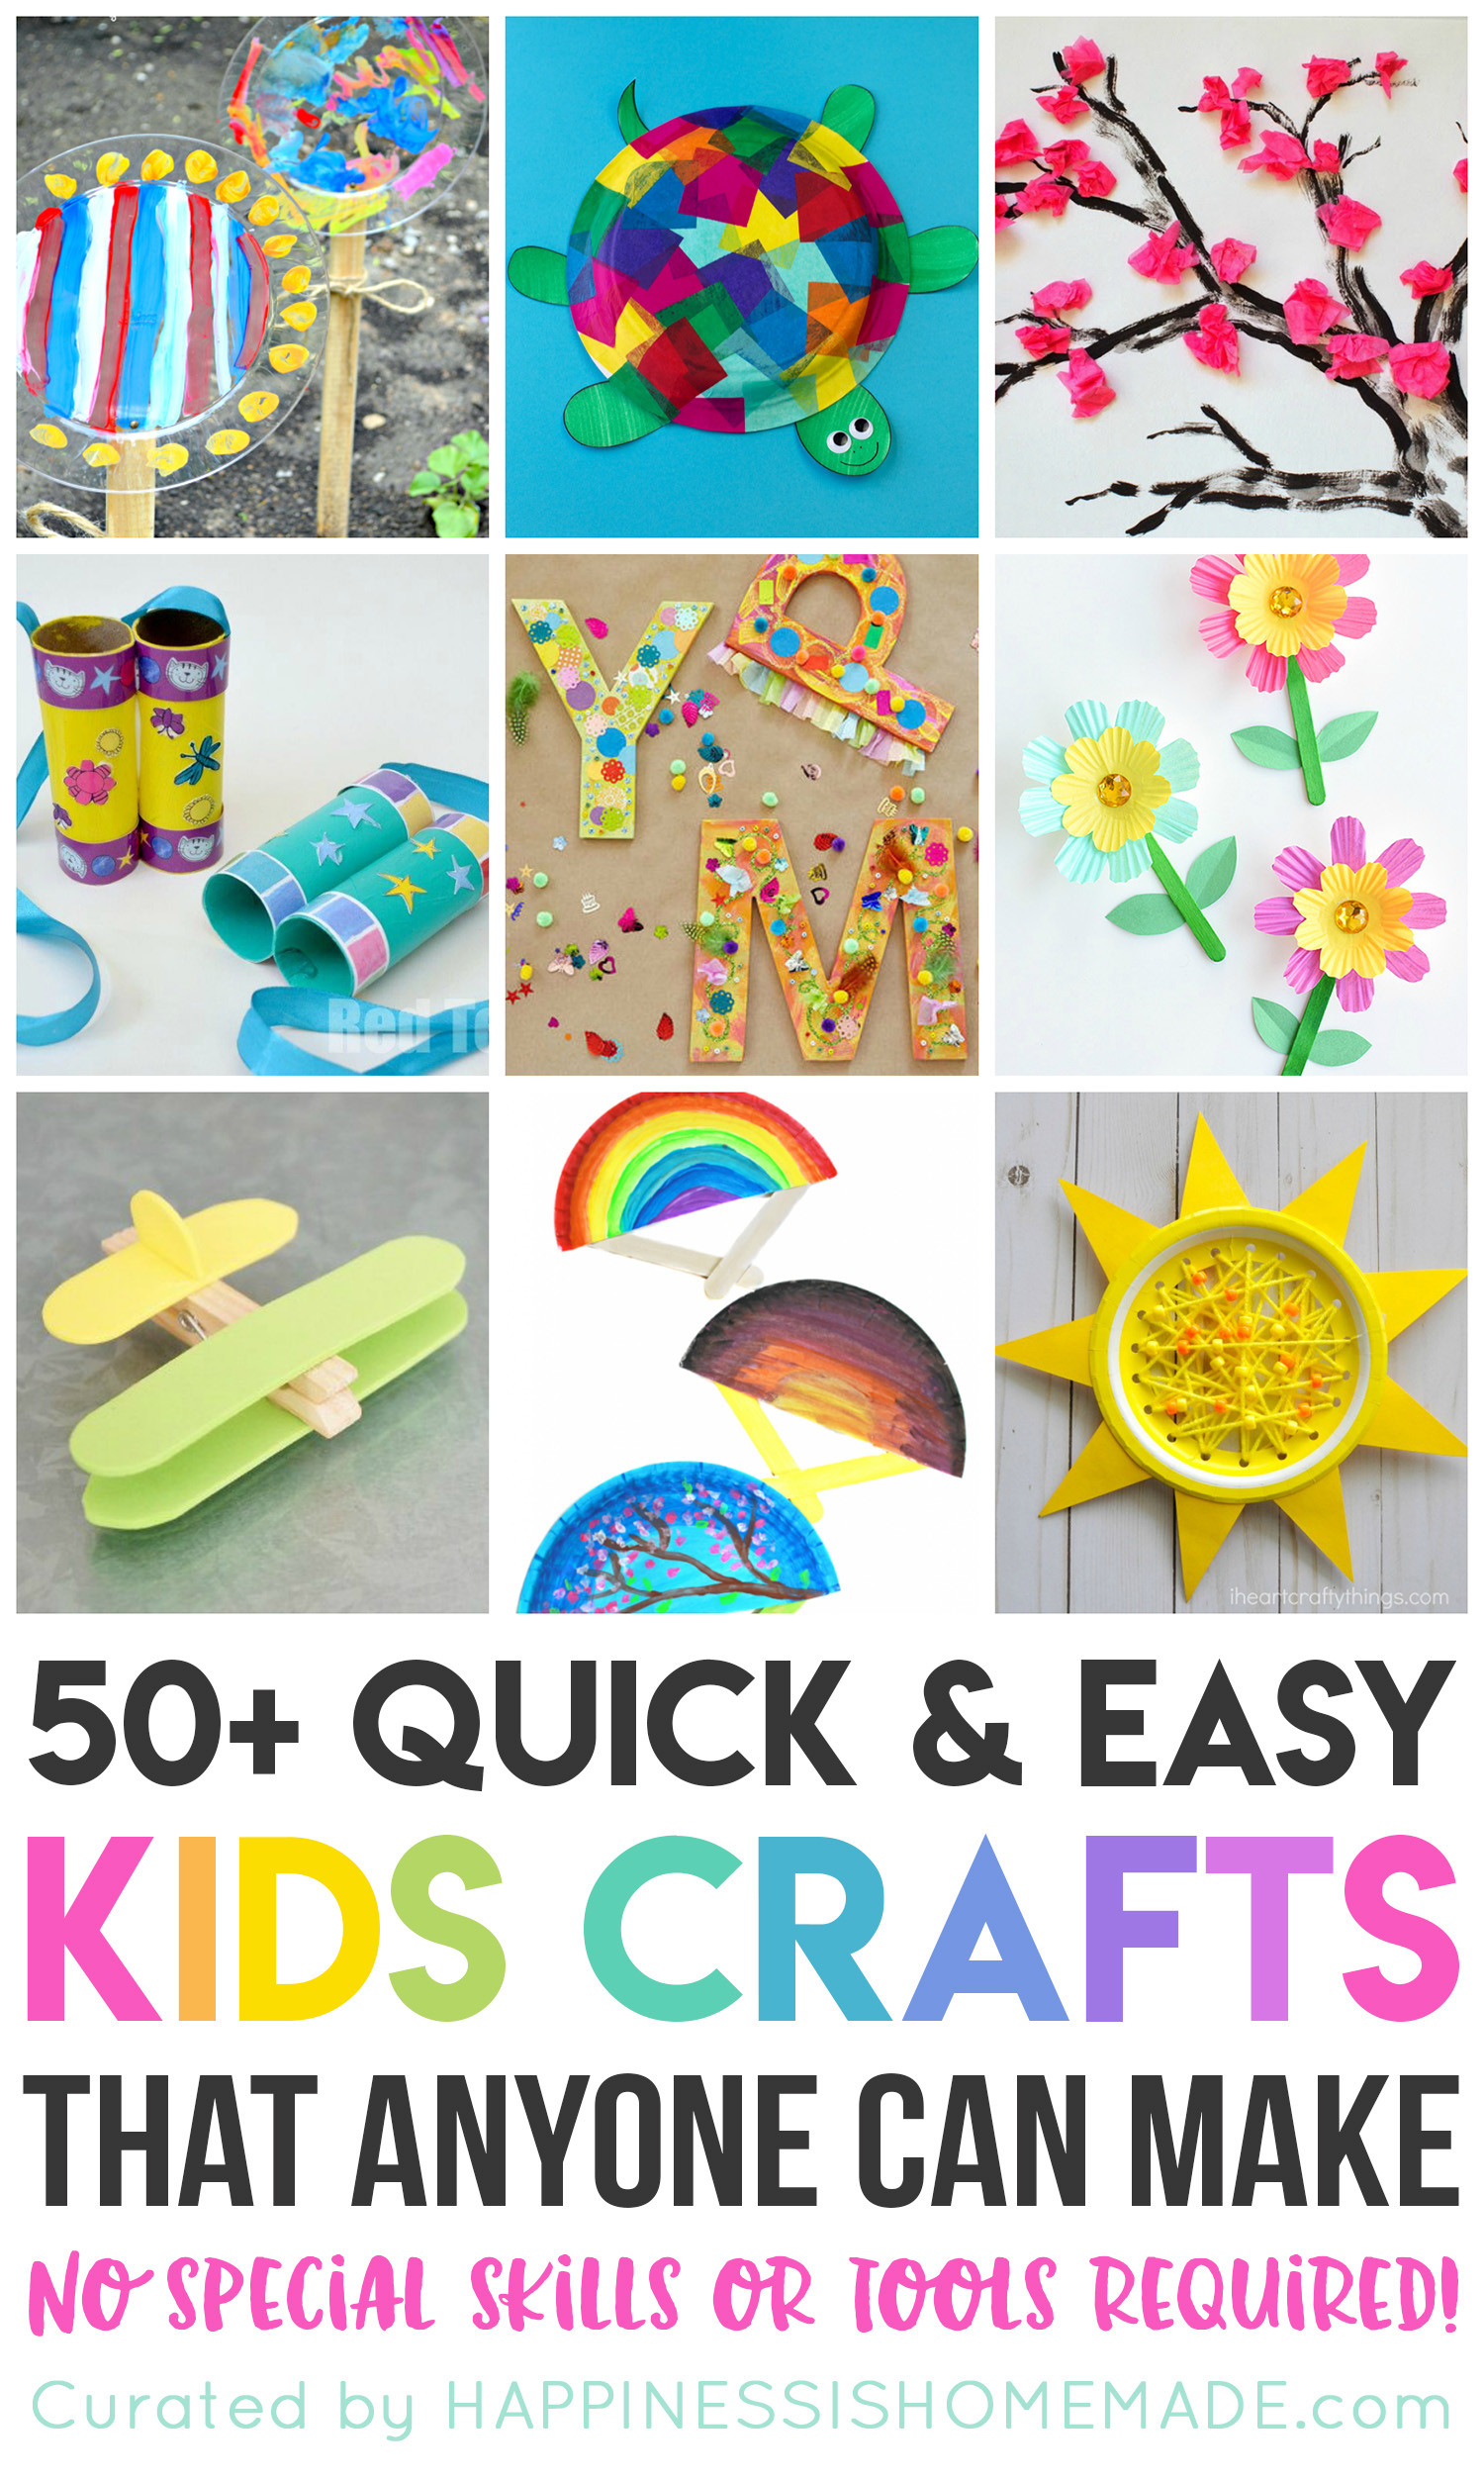 Best ideas about Easy Kids Crafts Ideas . Save or Pin Quick & Easy Halloween Crafts for Kids Happiness is Homemade Now.